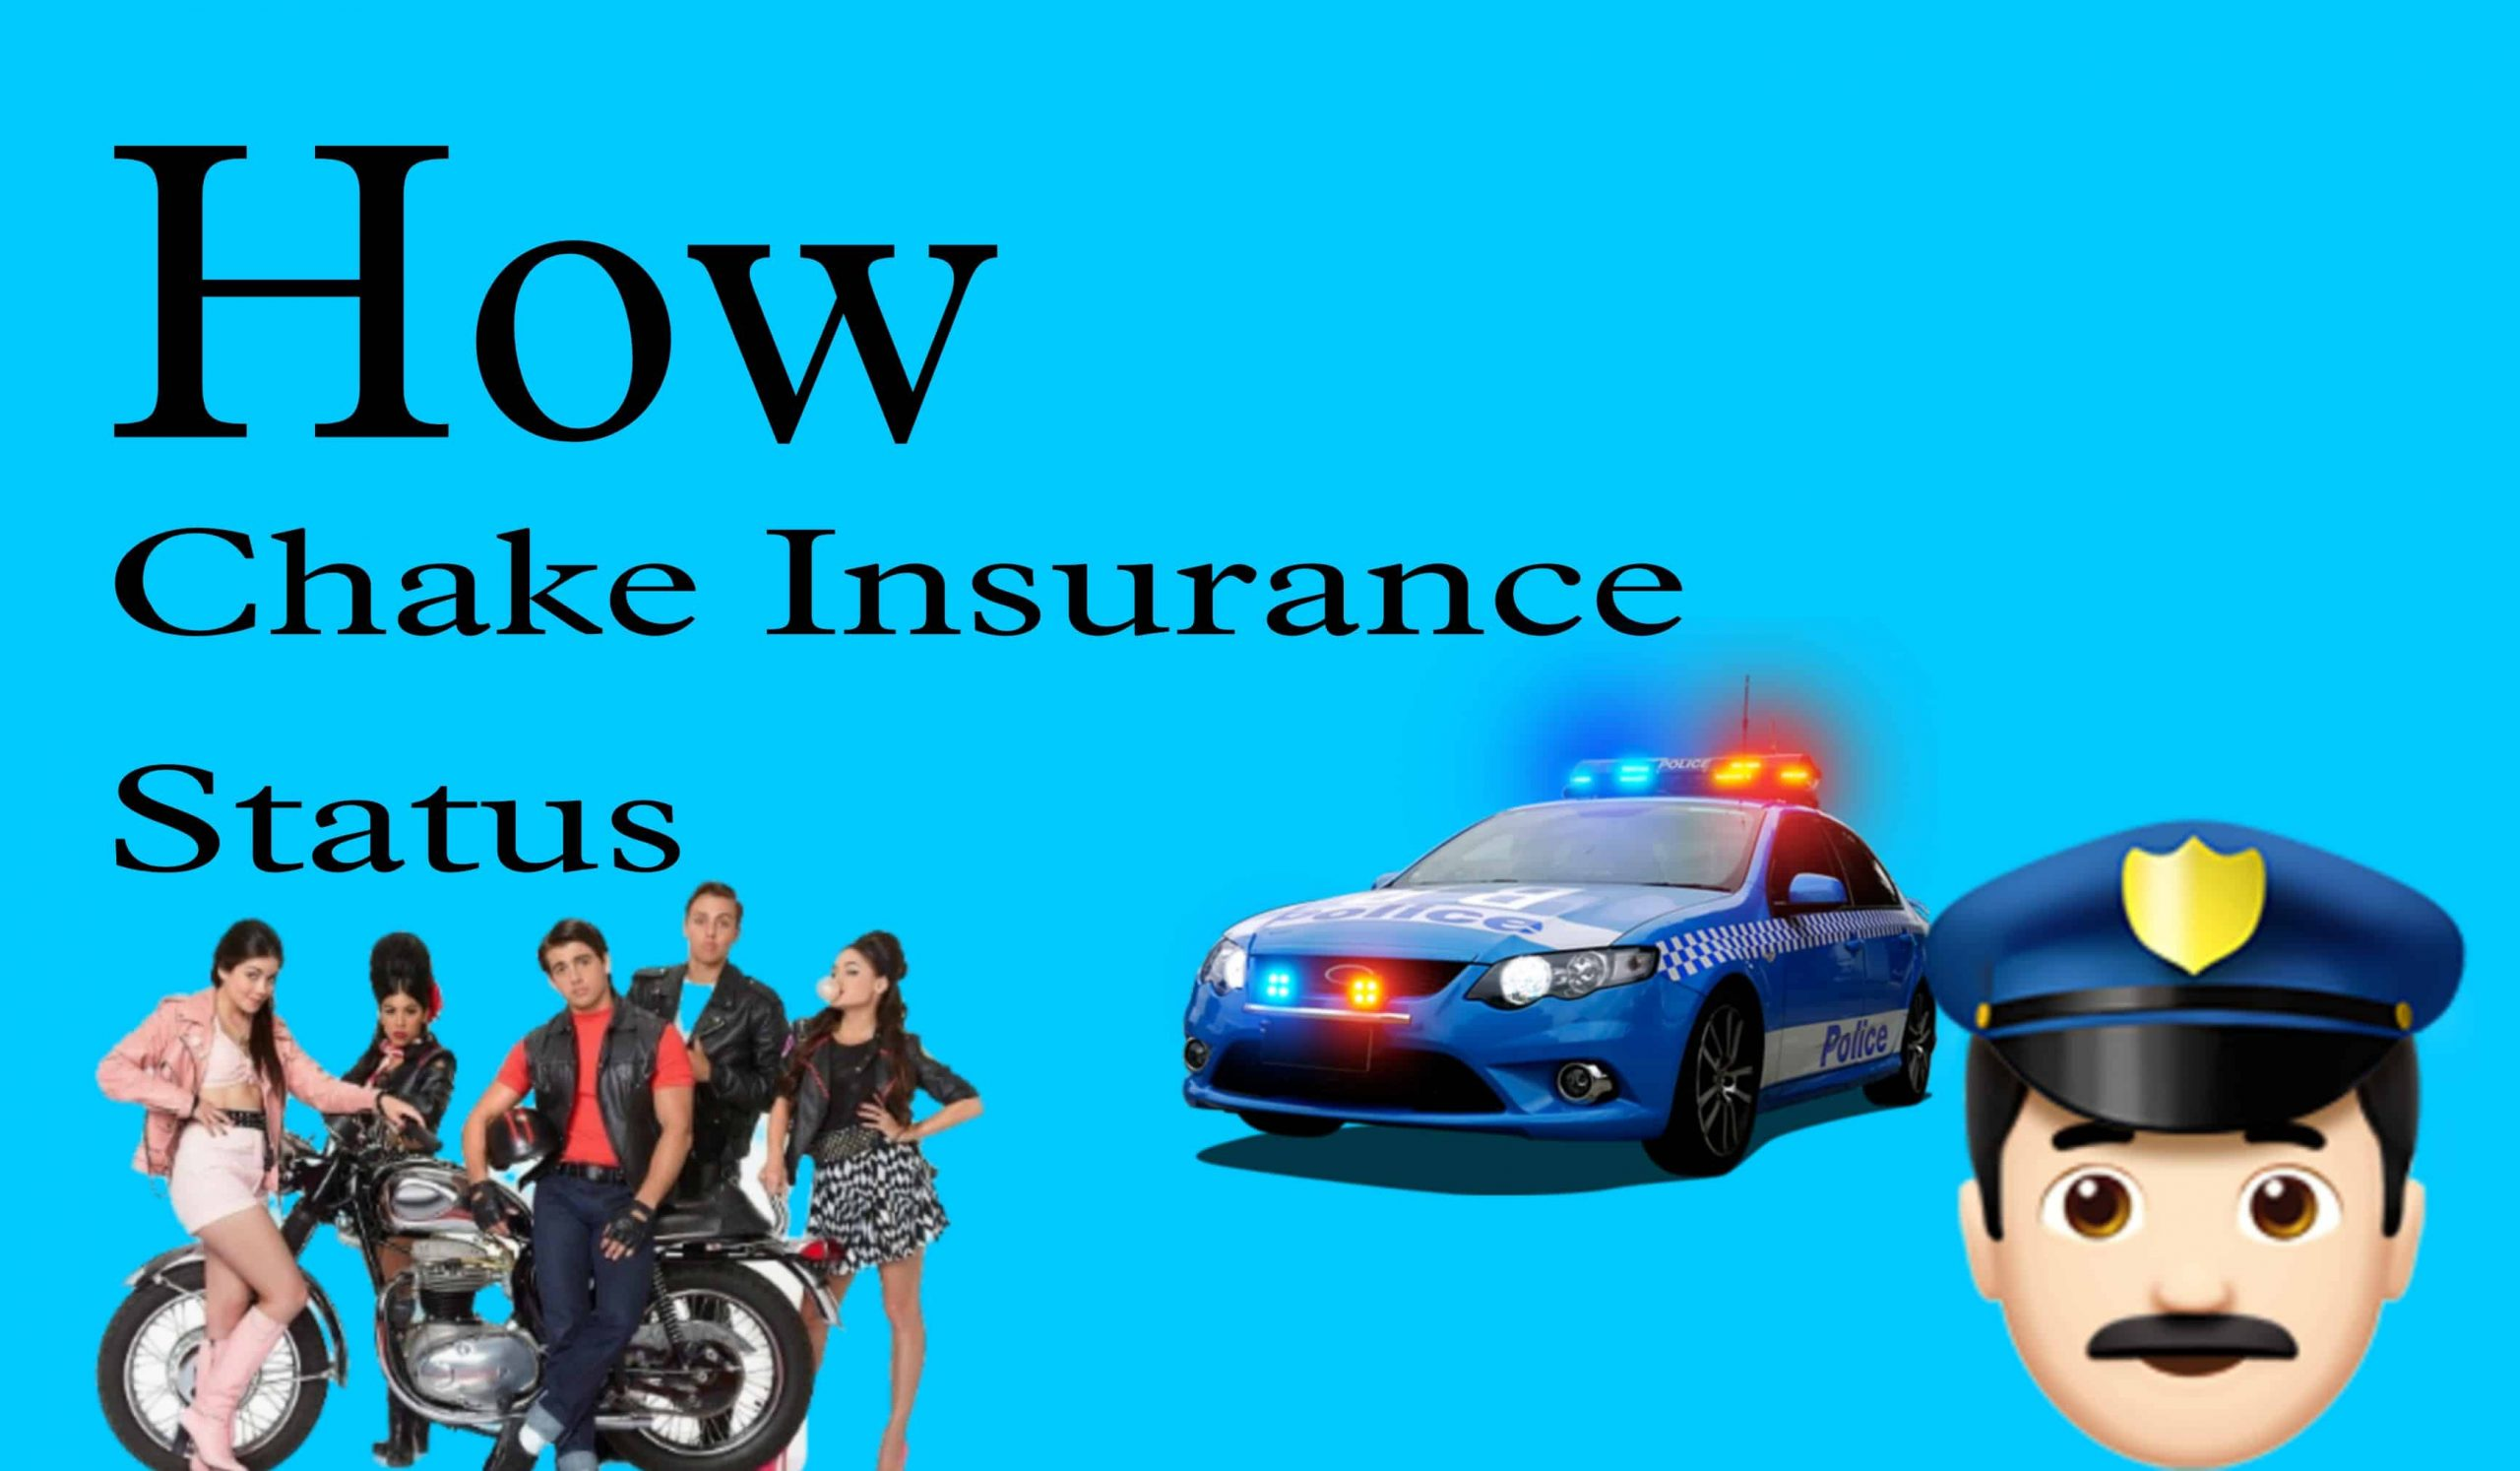 how to check insurance status how to check insurance status of bike how to check insurance status of car how to check insurance status online how to check insurance status in saudi arabia how to check insurance status in absher how to check insurance status in ga how to check insurance status in vahan how to check insurance status of car in india how to check insurance status in emirates id check vehicle insurance status online parivahan.gov.in insurance status check vehicle insurance history check bike insurance status online vahan rto insurance check how to find insurance policy number by vehicle number how to find insurance policy number by vehicle number how to check vehicle insurance policy status check vehicle insurance status online parivahan gov in insurance status rto insurance check vehicle insurance details by registration number india check vehicle insurance history check bike insurance status online vahan check vehicle insurance status online check vehicle insurance status online kerala check vehicle insurance status online india check vehicle insurance status online icici lombard check vehicle insurance status online vahan check vehicle insurance status online telangana check vehicle insurance status online new india assurance check vehicle insurance status online bajaj allianz check vehicle insurance status online bike check vehicle insurance status online national insurance check two wheeler vehicle insurance status online check commercial vehicle insurance status online check vehicle insurance history bike insurance status check online rto insurance check check insurance status parivahan insurance check how to check vehicle insurance policy status vehicle insurance details by registration number india rto insurance check bike insurance status check online check vehicle insurance history parivahan insurance check how to check vehicle insurance policy status how to find insurance policy number by vehicle number insurance check online check vehicle ins